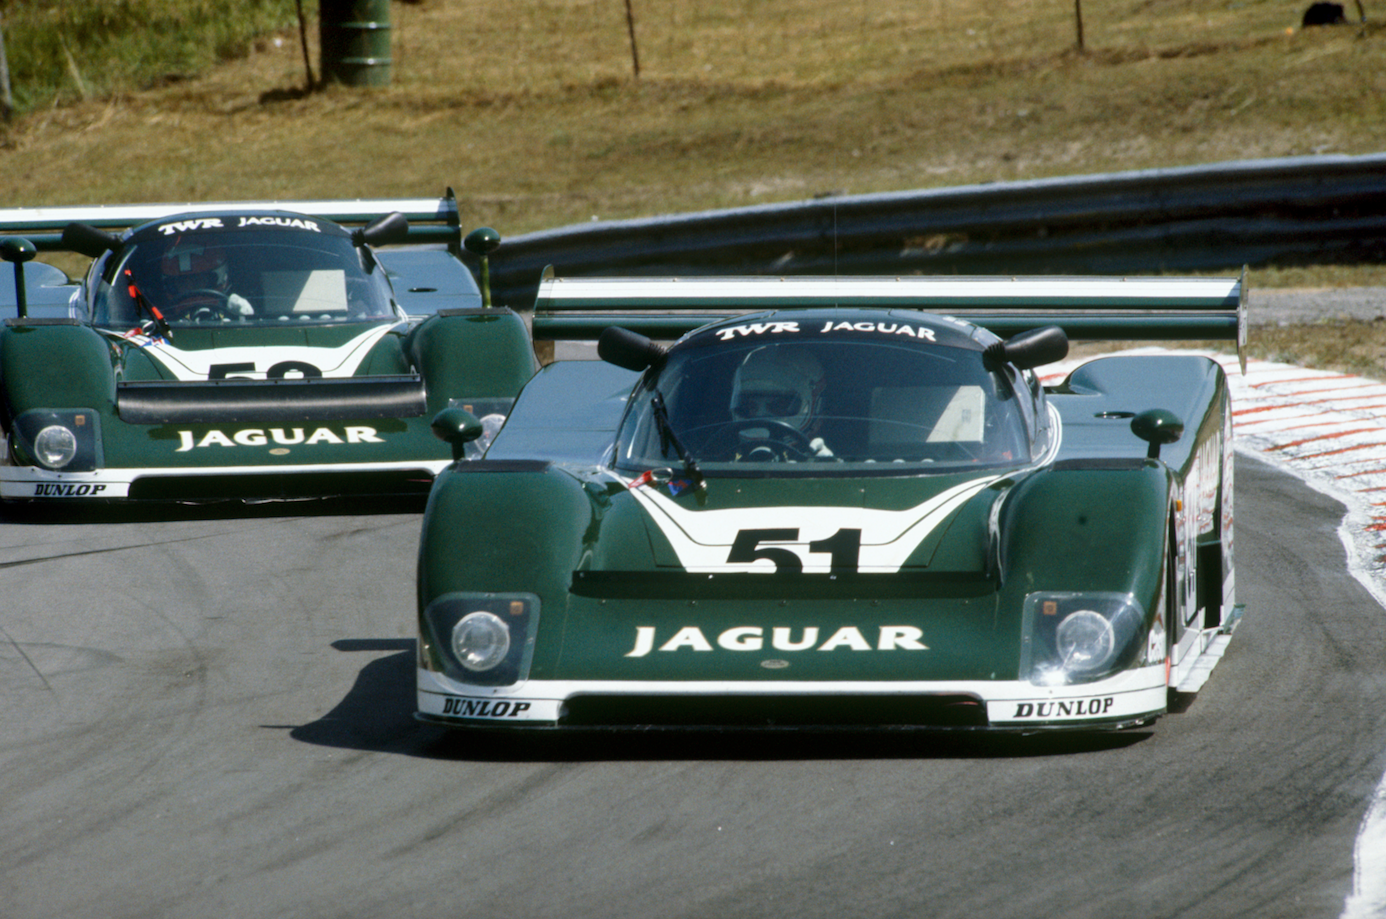 Pin by Fernando Collao on Mike Thackwell   Jaguar car ...